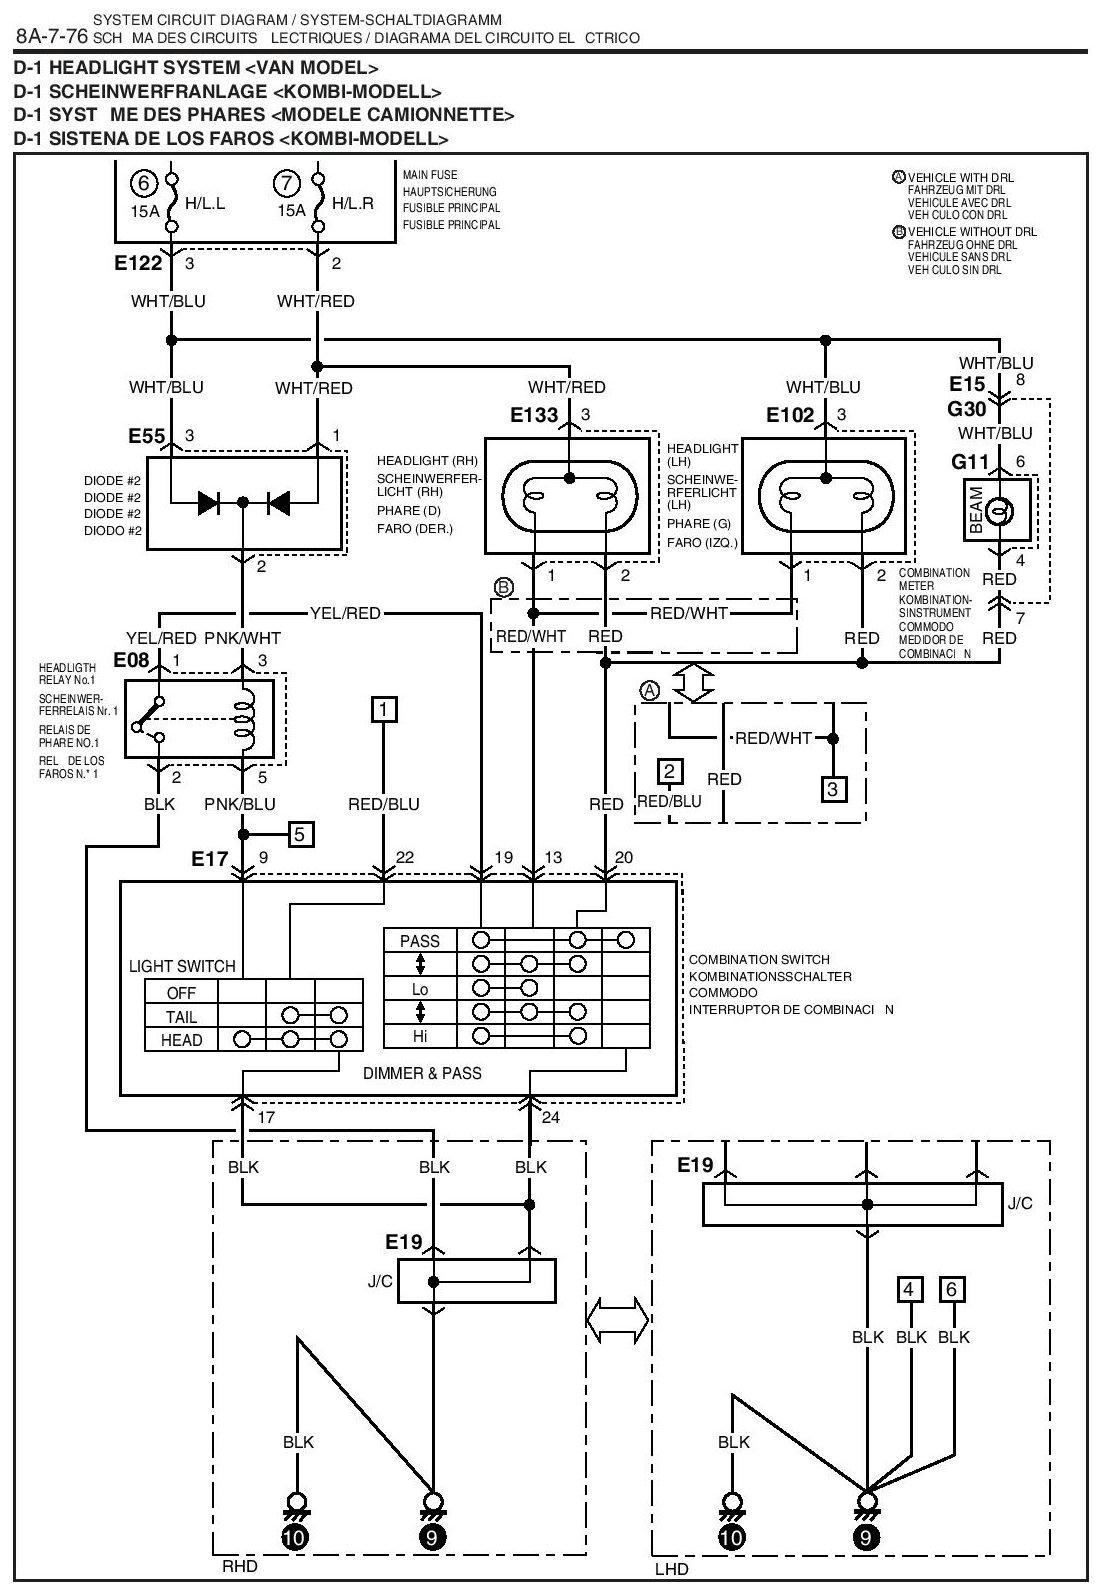 2007 Suzuki Xl7 Fuse Diagram Wiring Diagrams